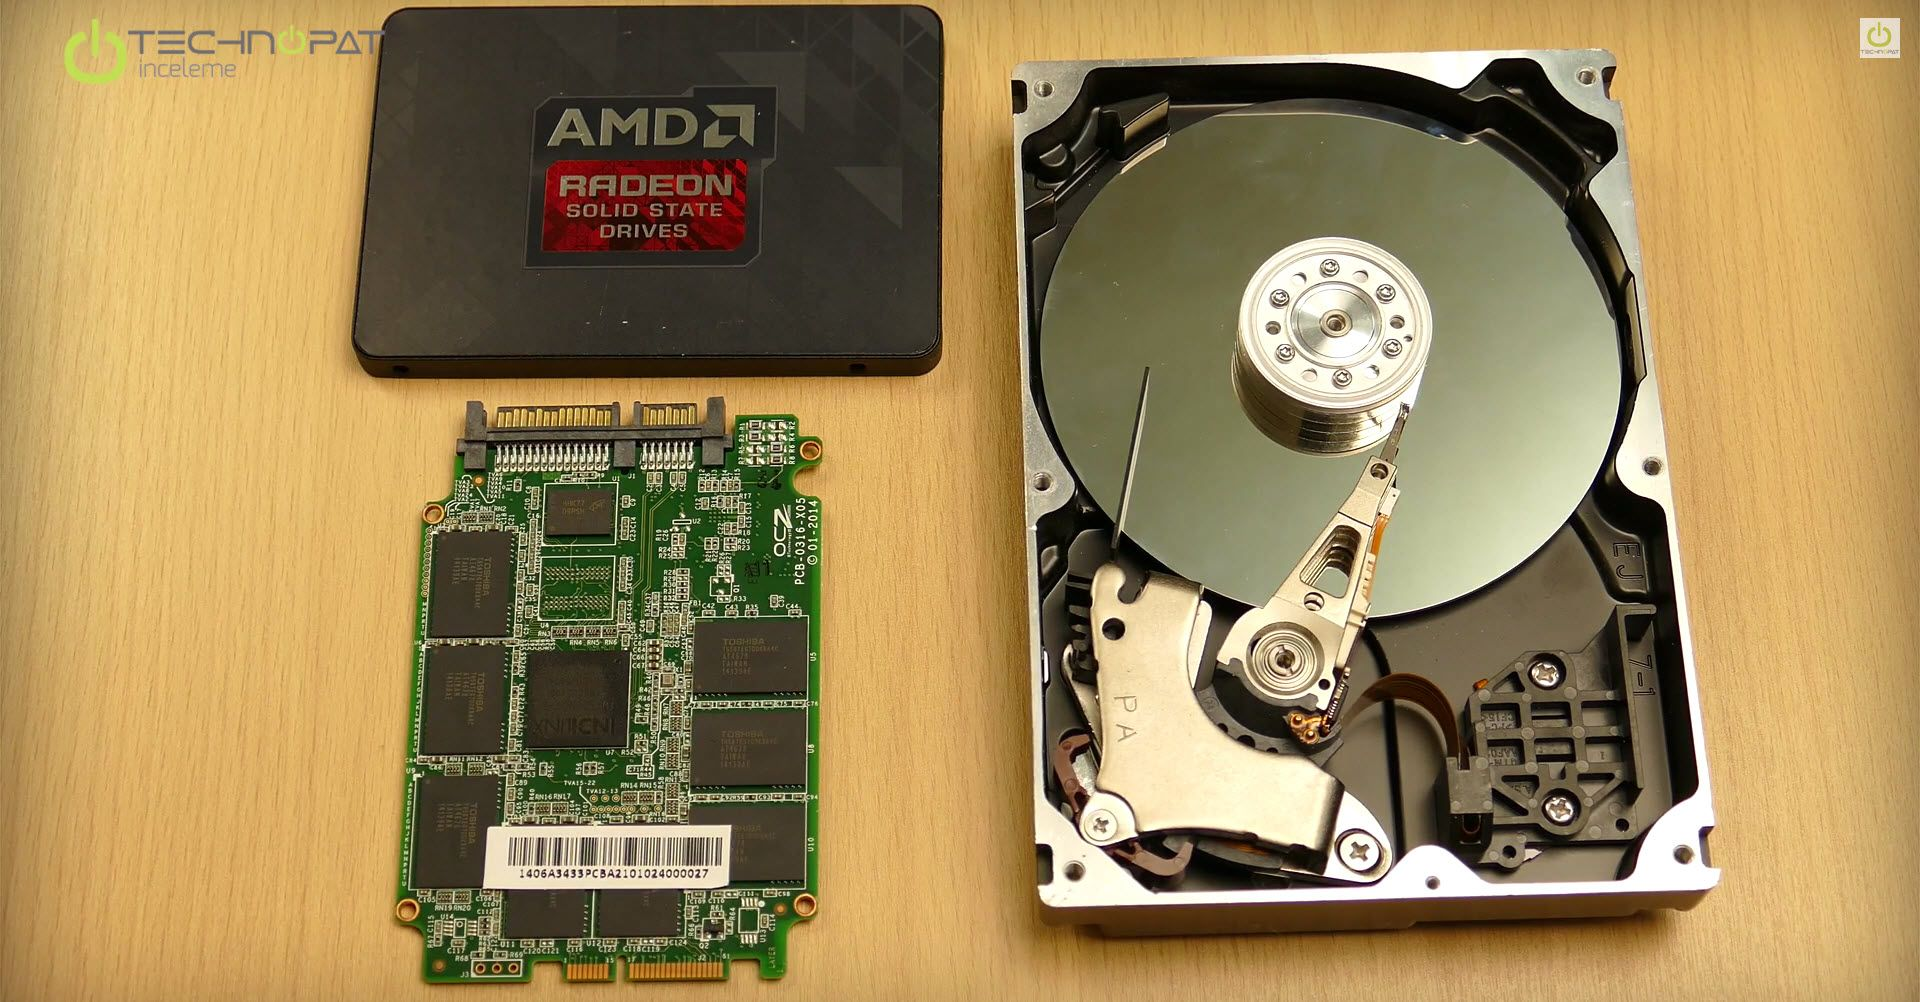 AMD-Radeon-R7-240-GB-SSD-Solid-State-Disk-inceleme-2-technopat